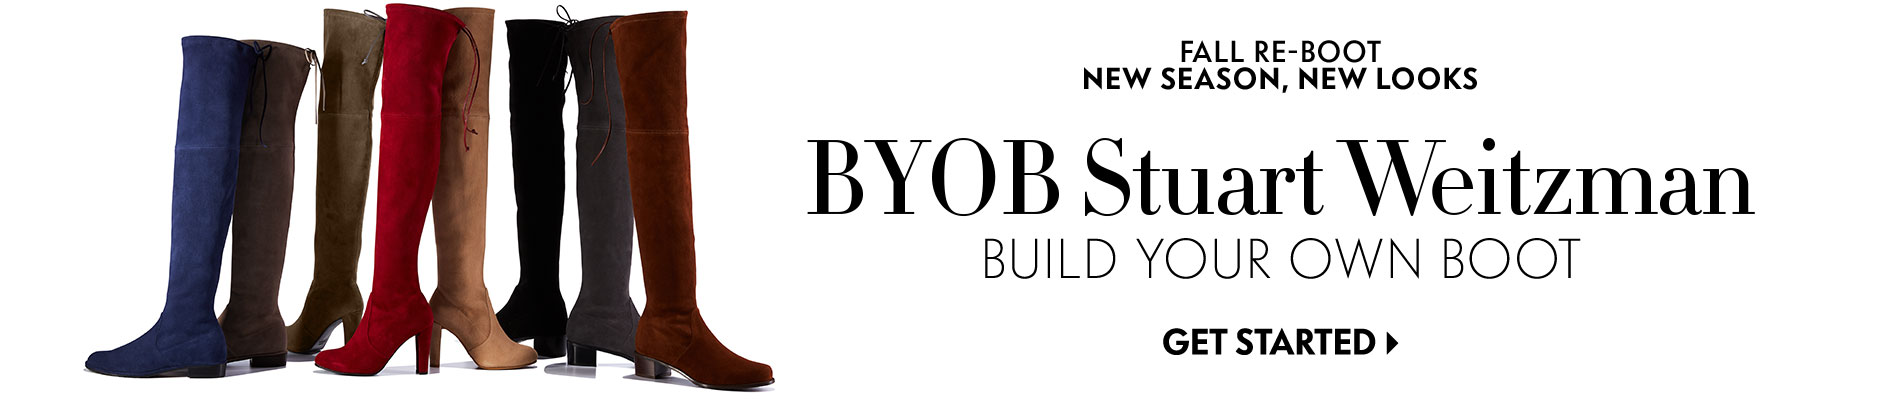 Fall Re-Boot, New Season, New Looks: BYOB Stuart Weitzman - Build Your Own Boot